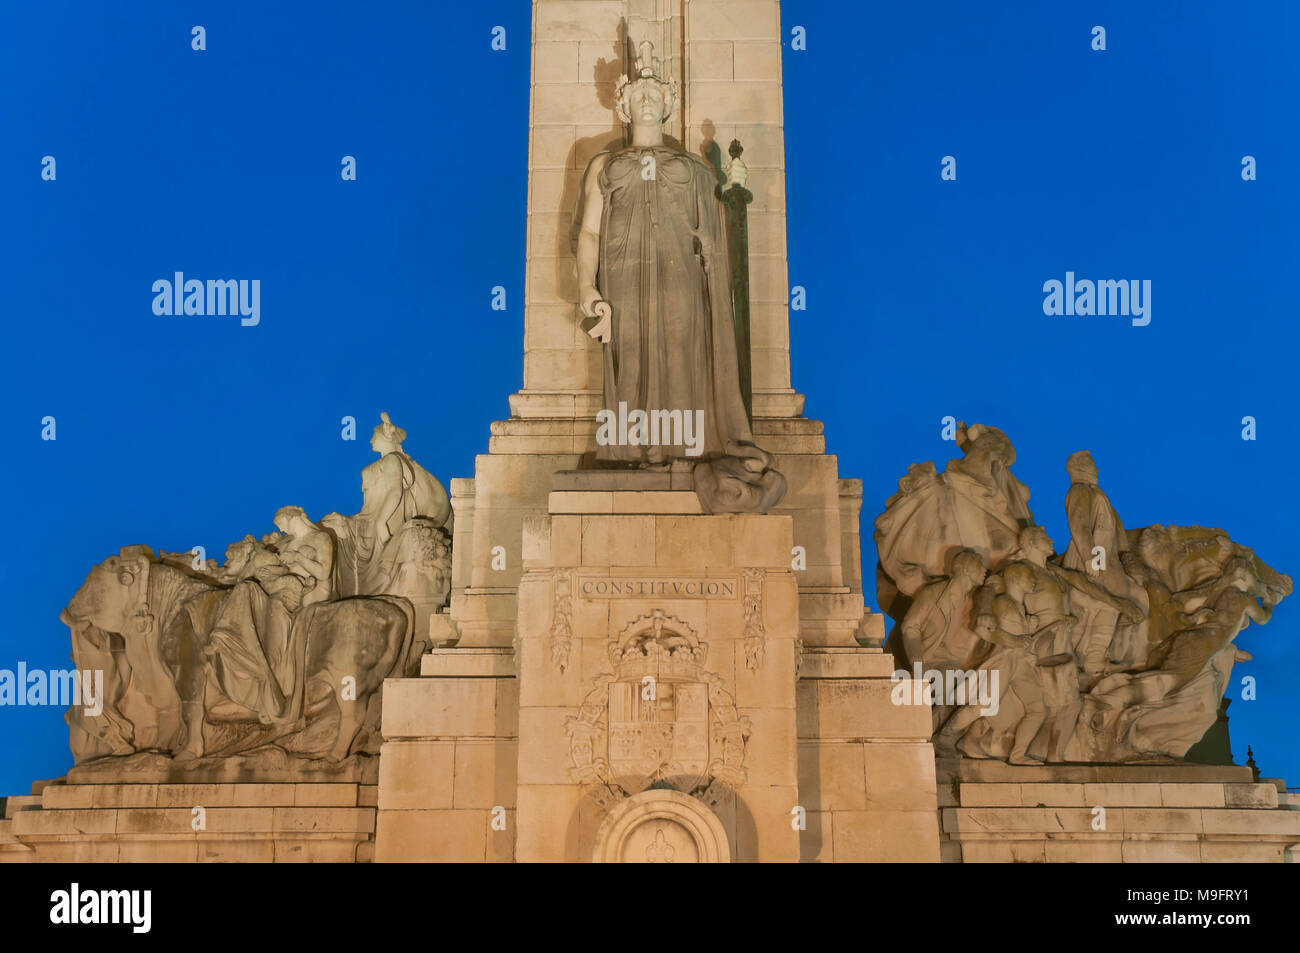 Monument to the Spanish Constitution of 1812 at dusk- detail. Cadiz. Region of Andalusia. Spain. Europe - Stock Image